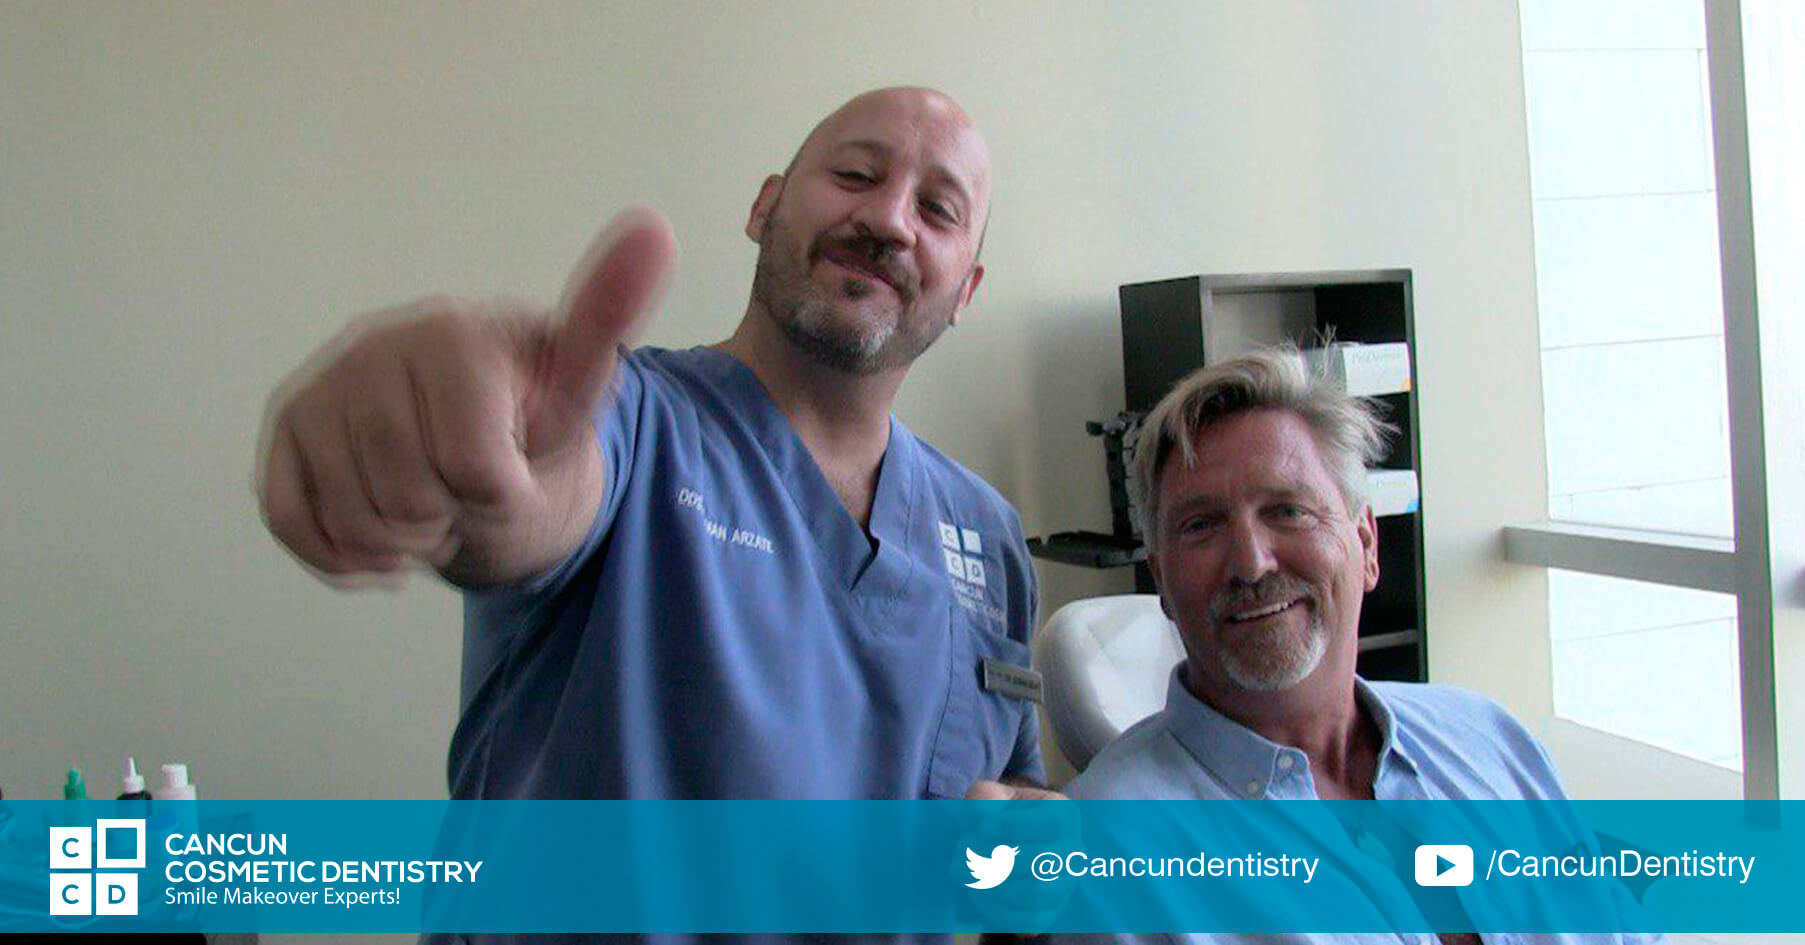 Cancun Cosmetic Dentistry has warranty on their dental pieces! Doctor German Arzate